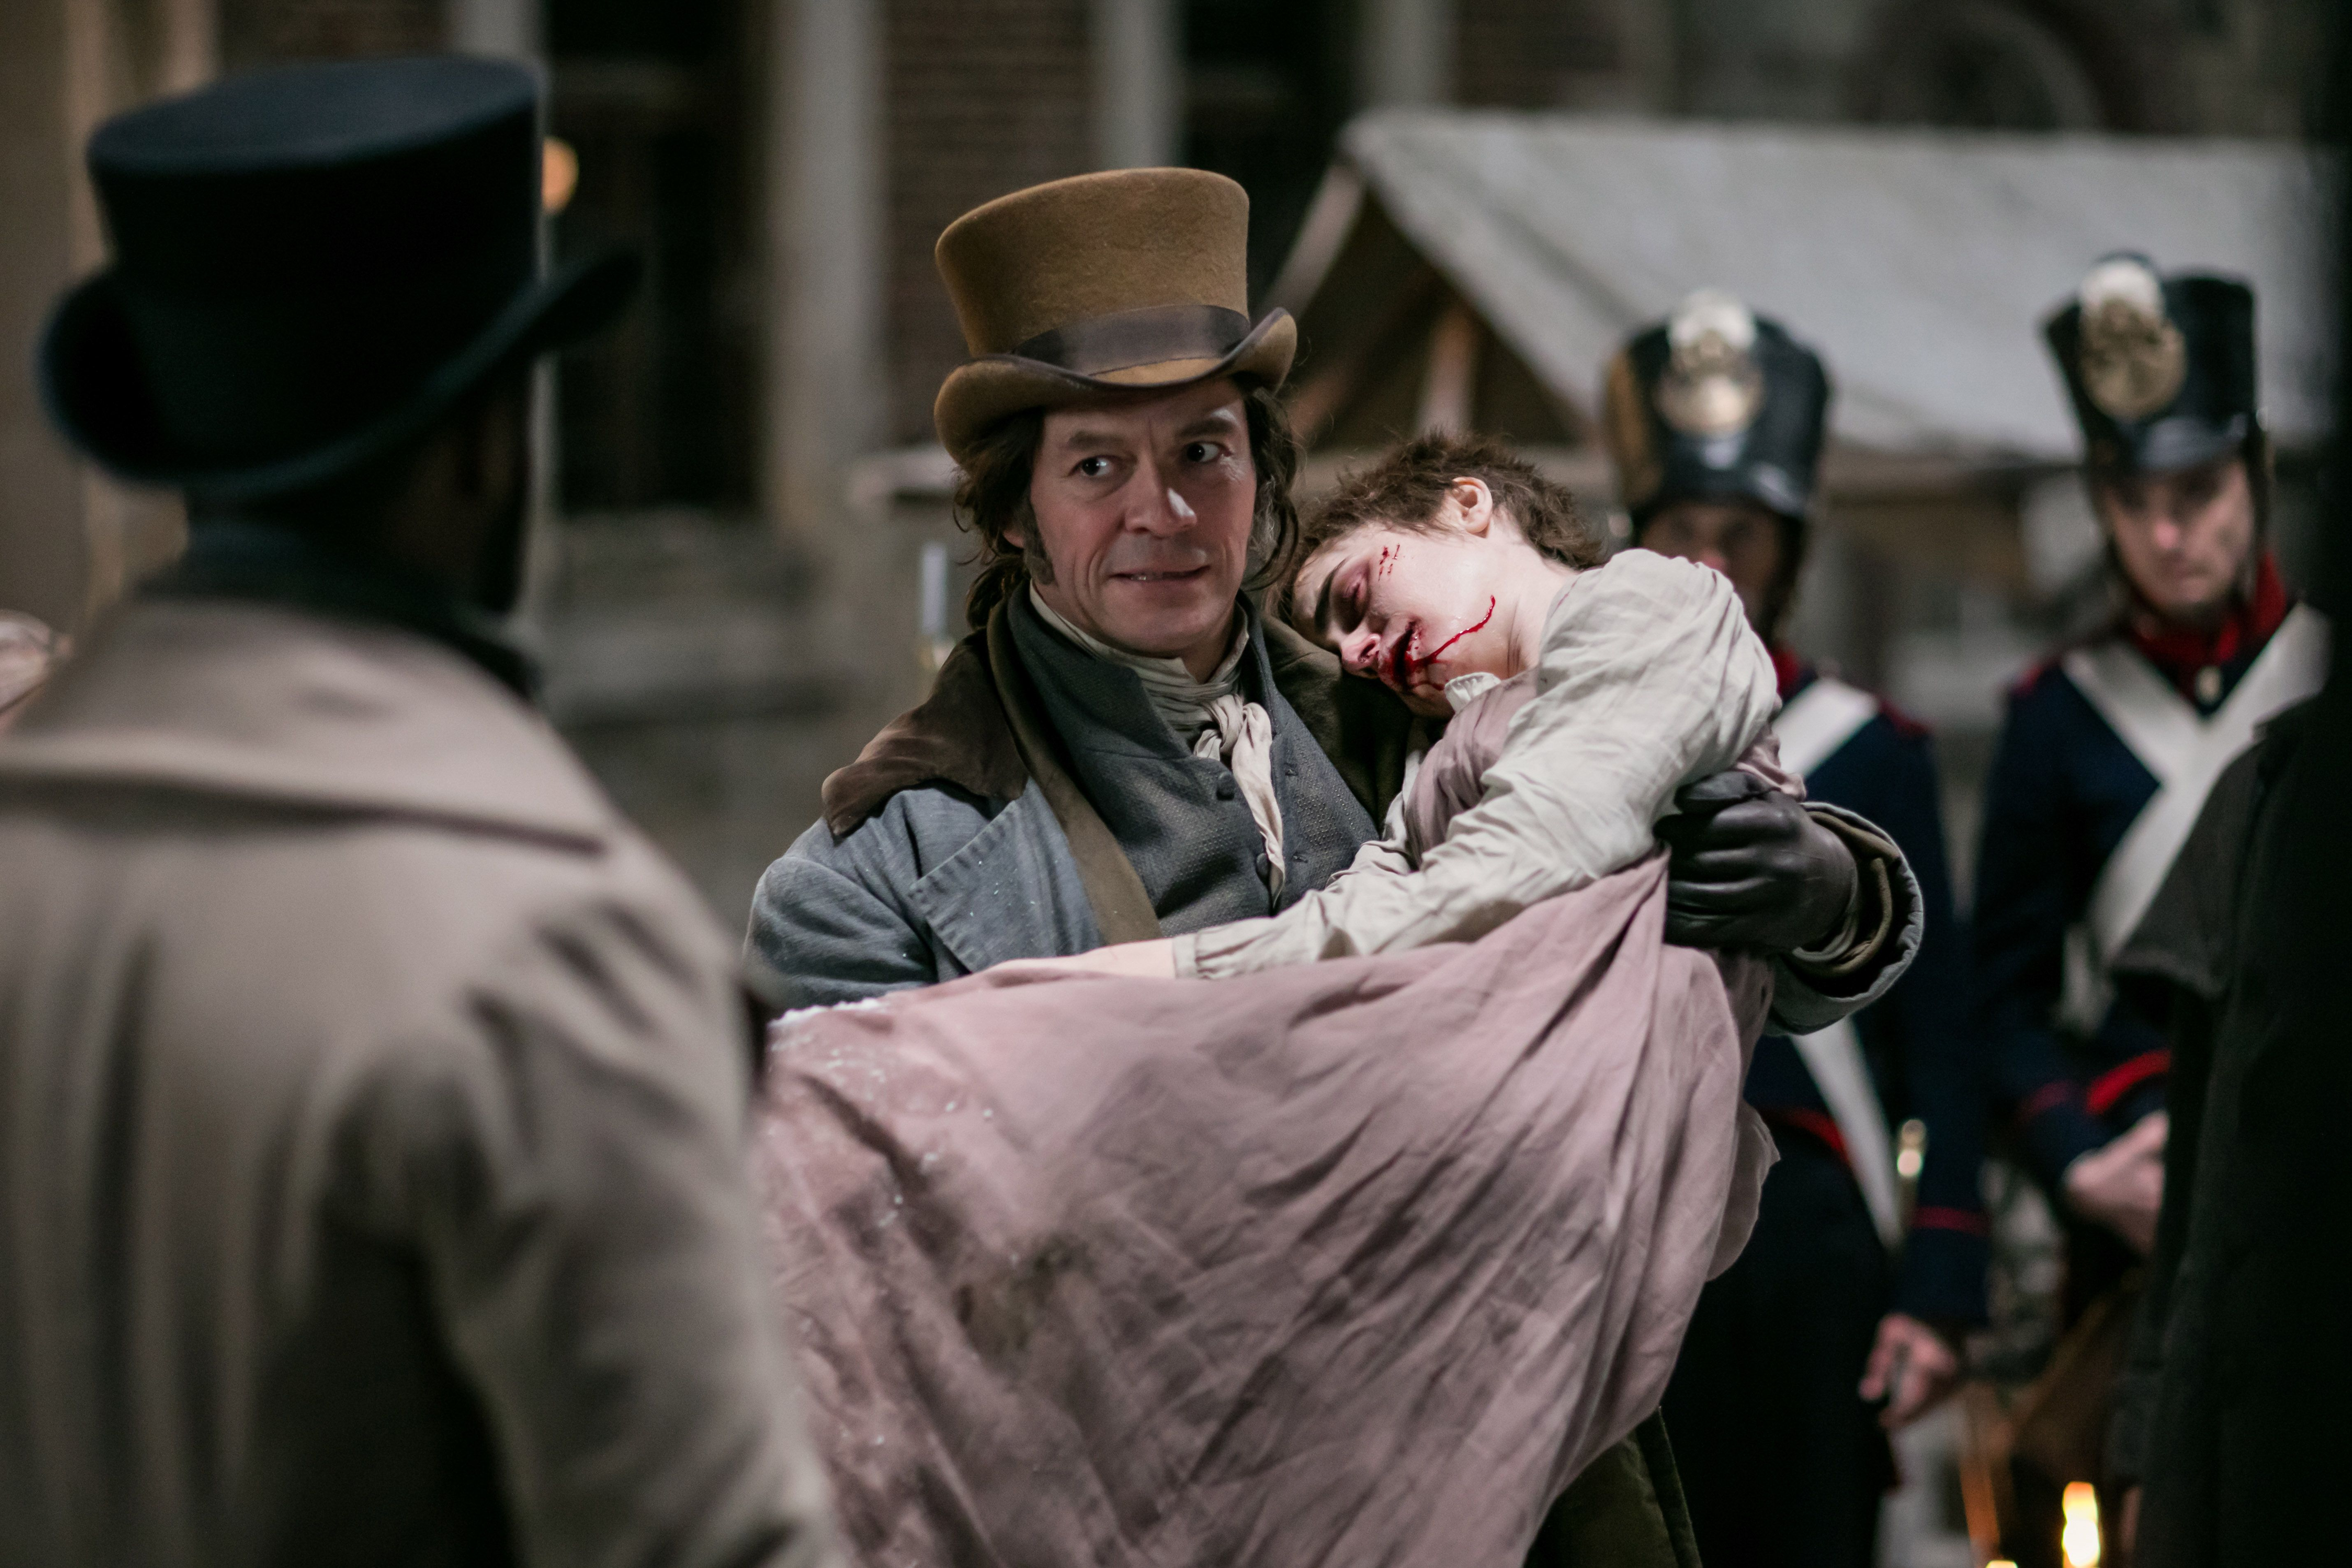 Dominic West as Jean Valjean and Lily Collins as Fantine in Les Misérables.